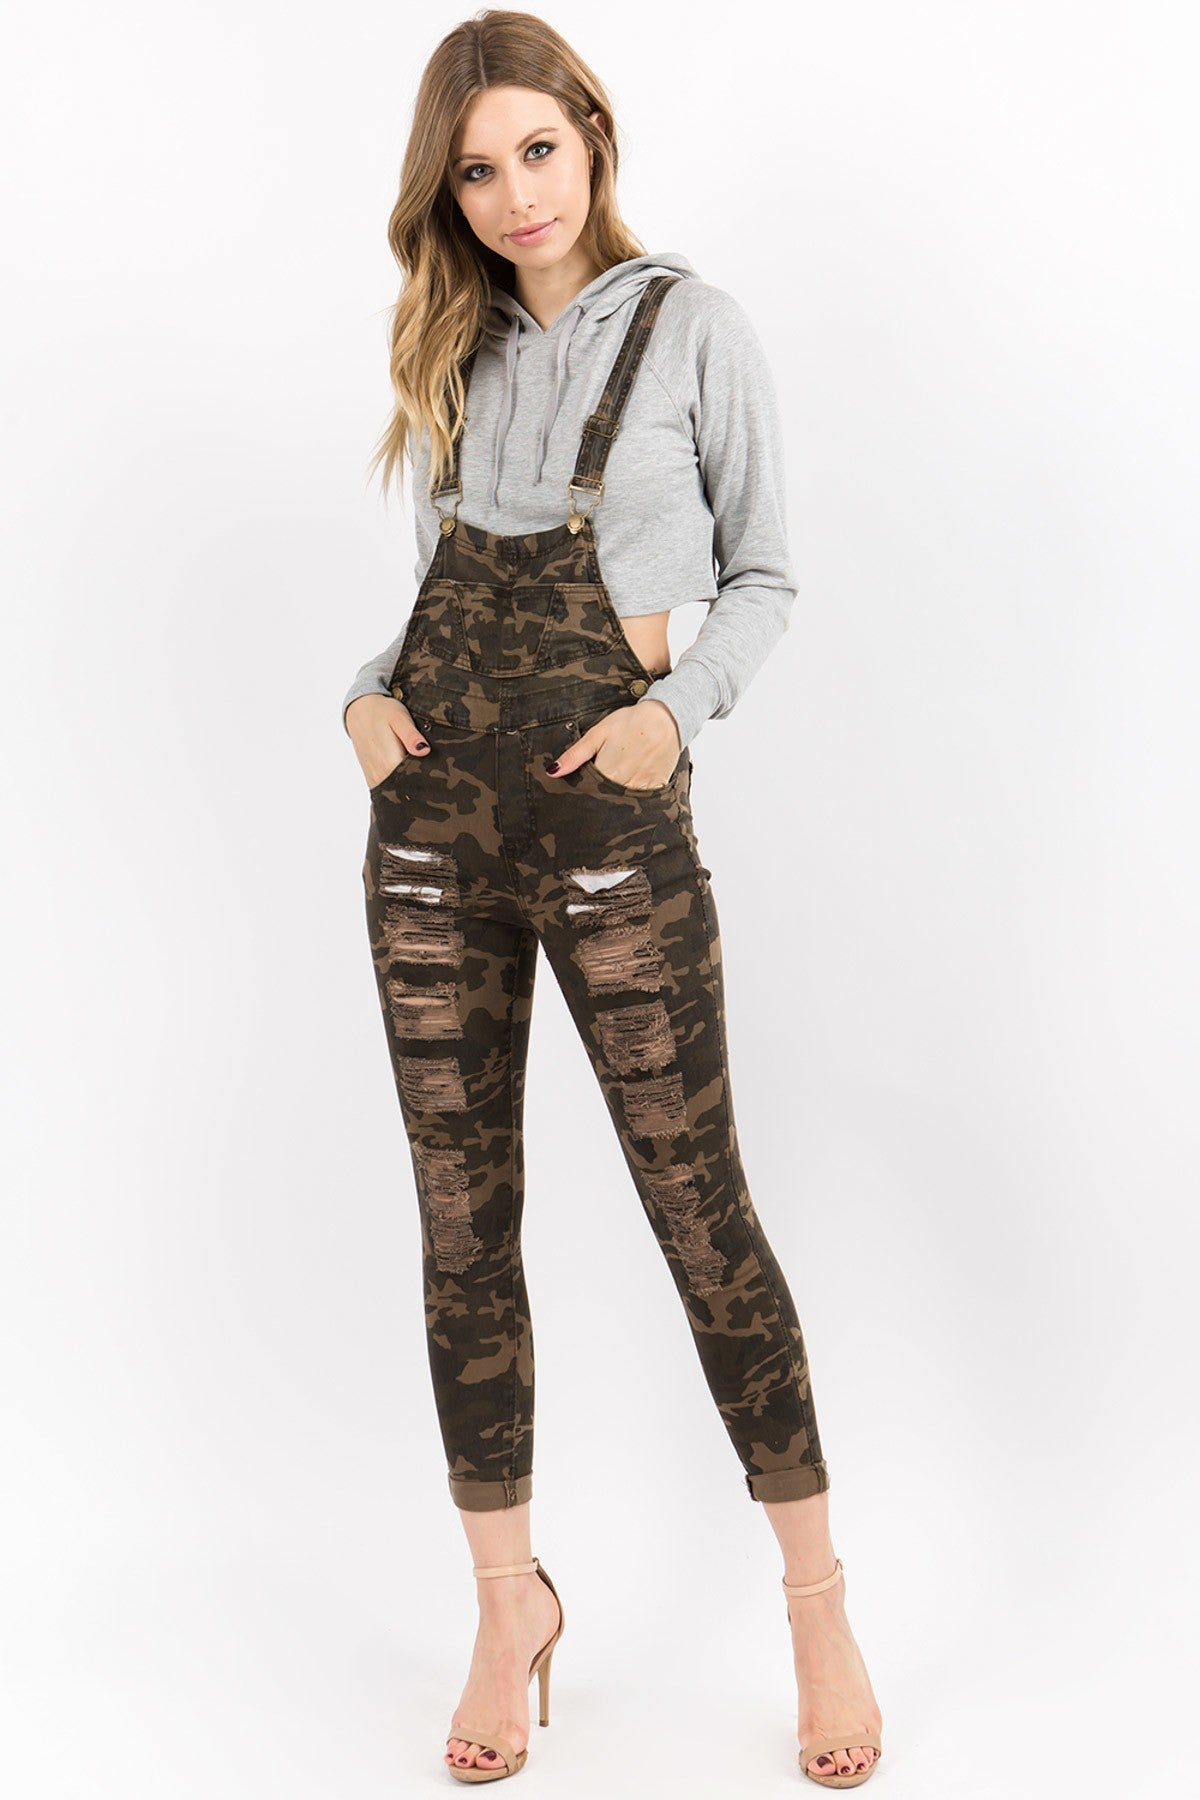 Camo Distressed Overall Bibs - PLUS - jumpsuit